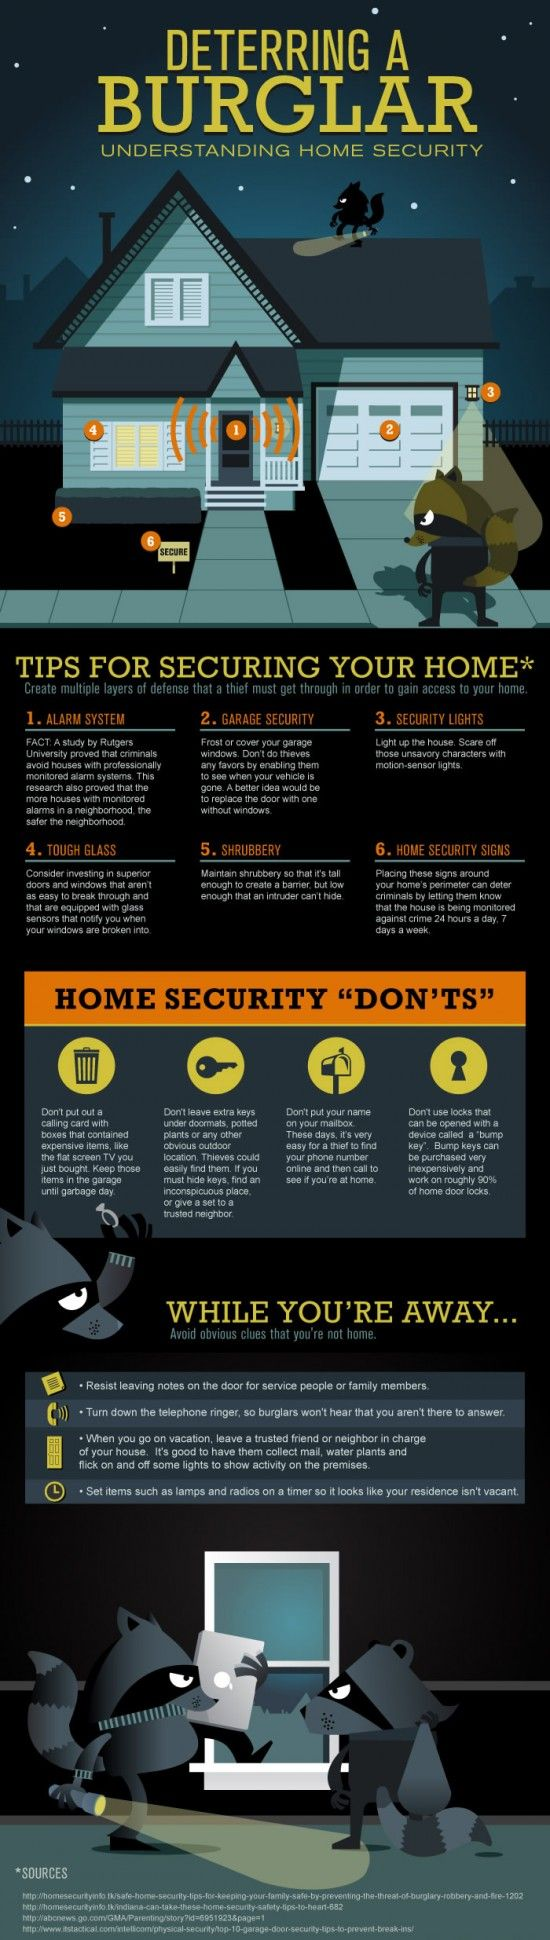 Trusting that your home, family and belongings are protected is the key to having peace of mind when you're away. By following these tips for home security you can go to work or on vacation knowing you've taken the appropriate measures to avoid a break-in or theft. These are simple and effective steps you can take today to ensure your home is protected all year-round. From utilizing shrubbery as a barrier to installing motion-sensor lights, there are many tools available to assist you in…